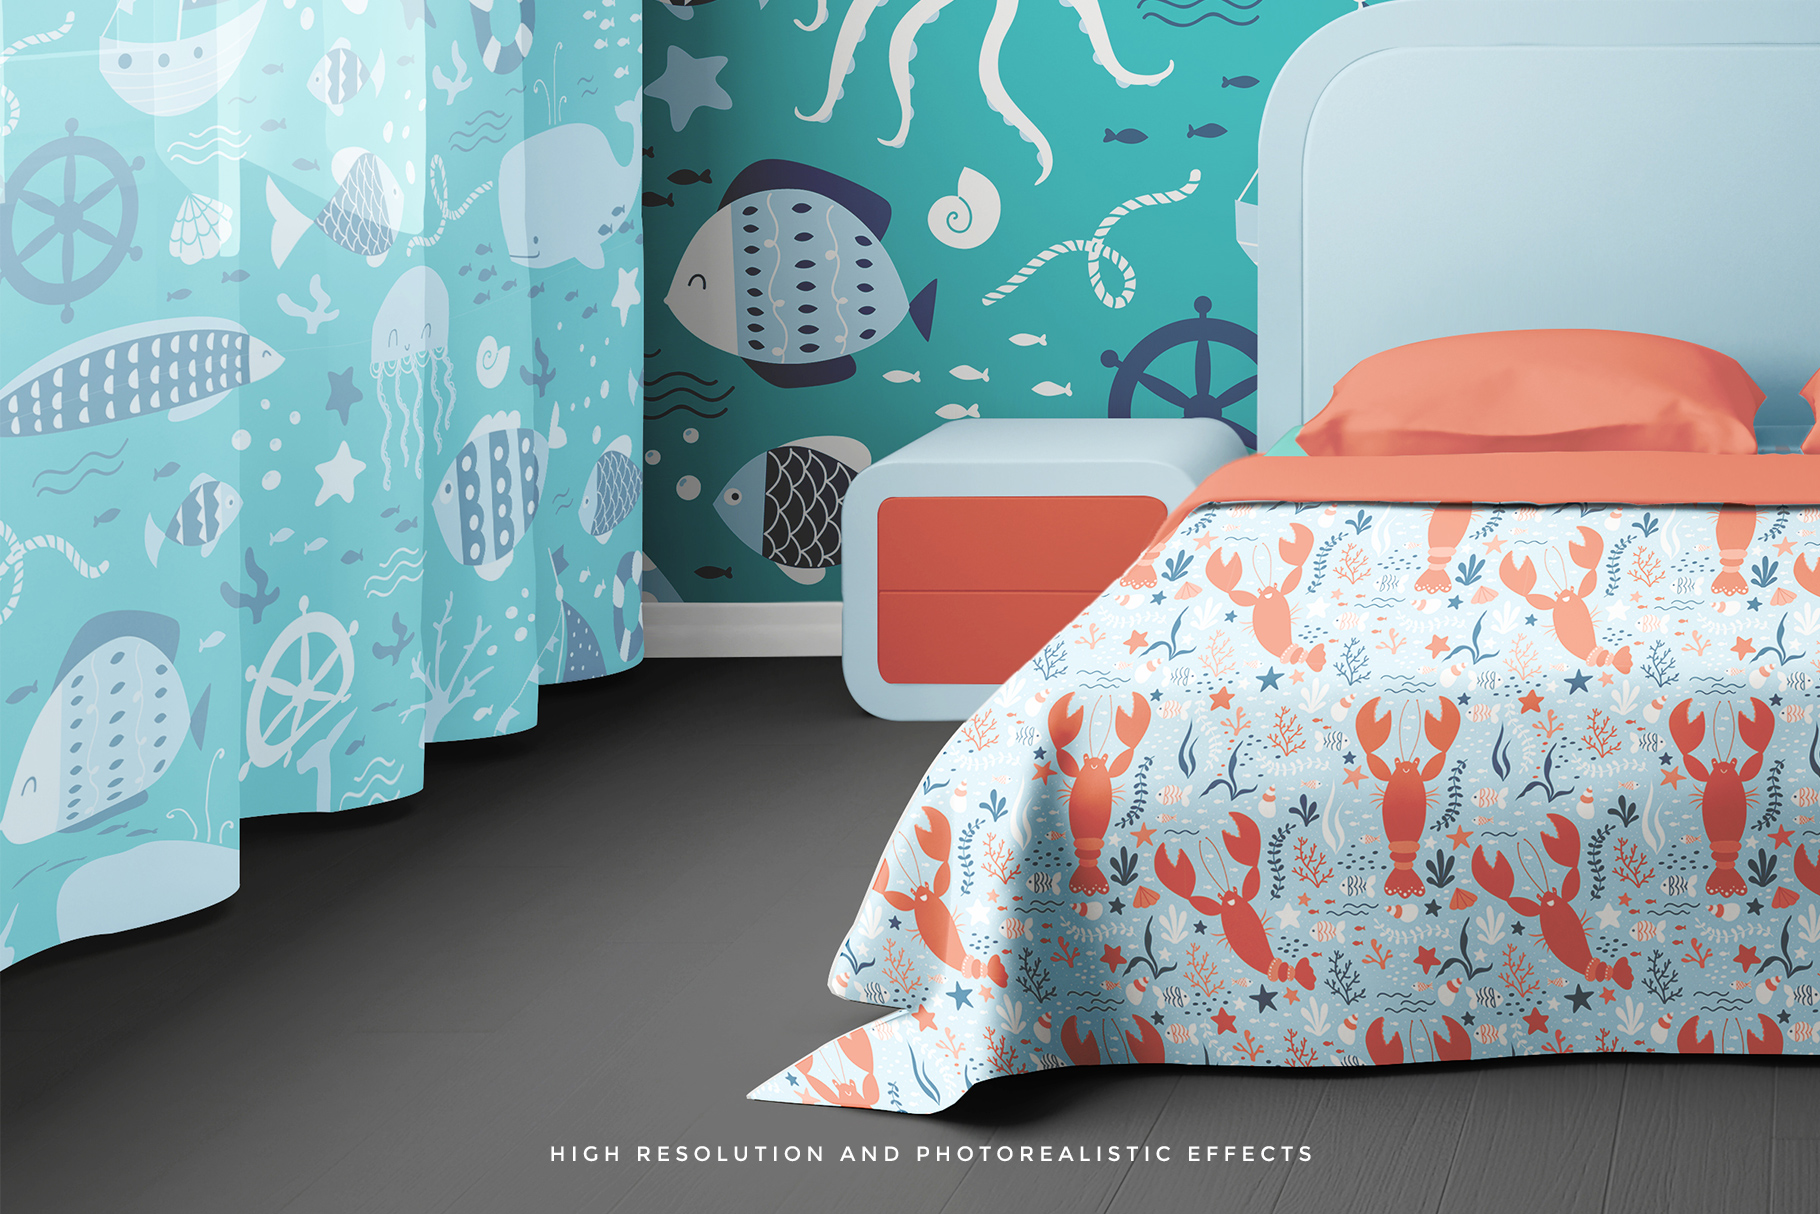 high resolution photorealistic effects of the bedroom interior mockup